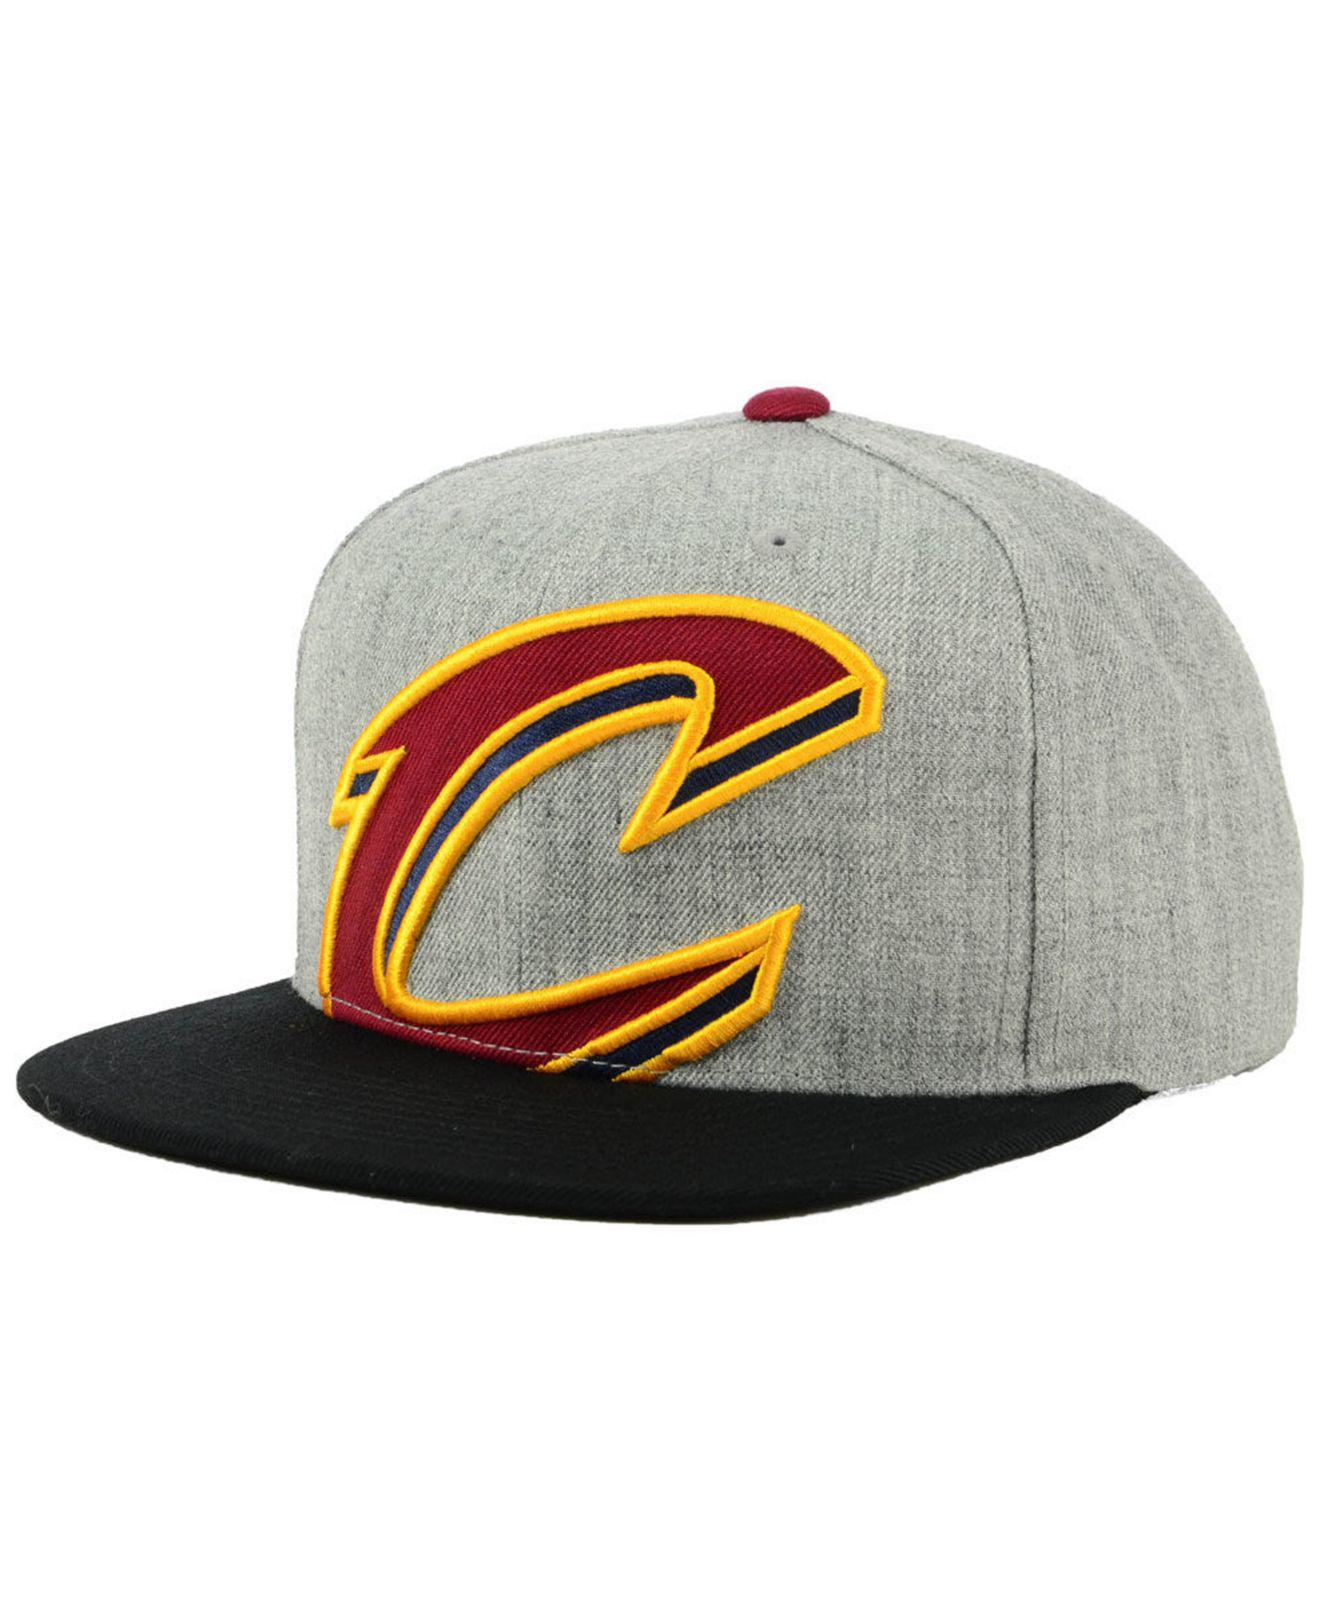 5a53dc2c504 Lyst - Mitchell   Ness Cleveland Cavaliers Cropped Heather Snapback ...